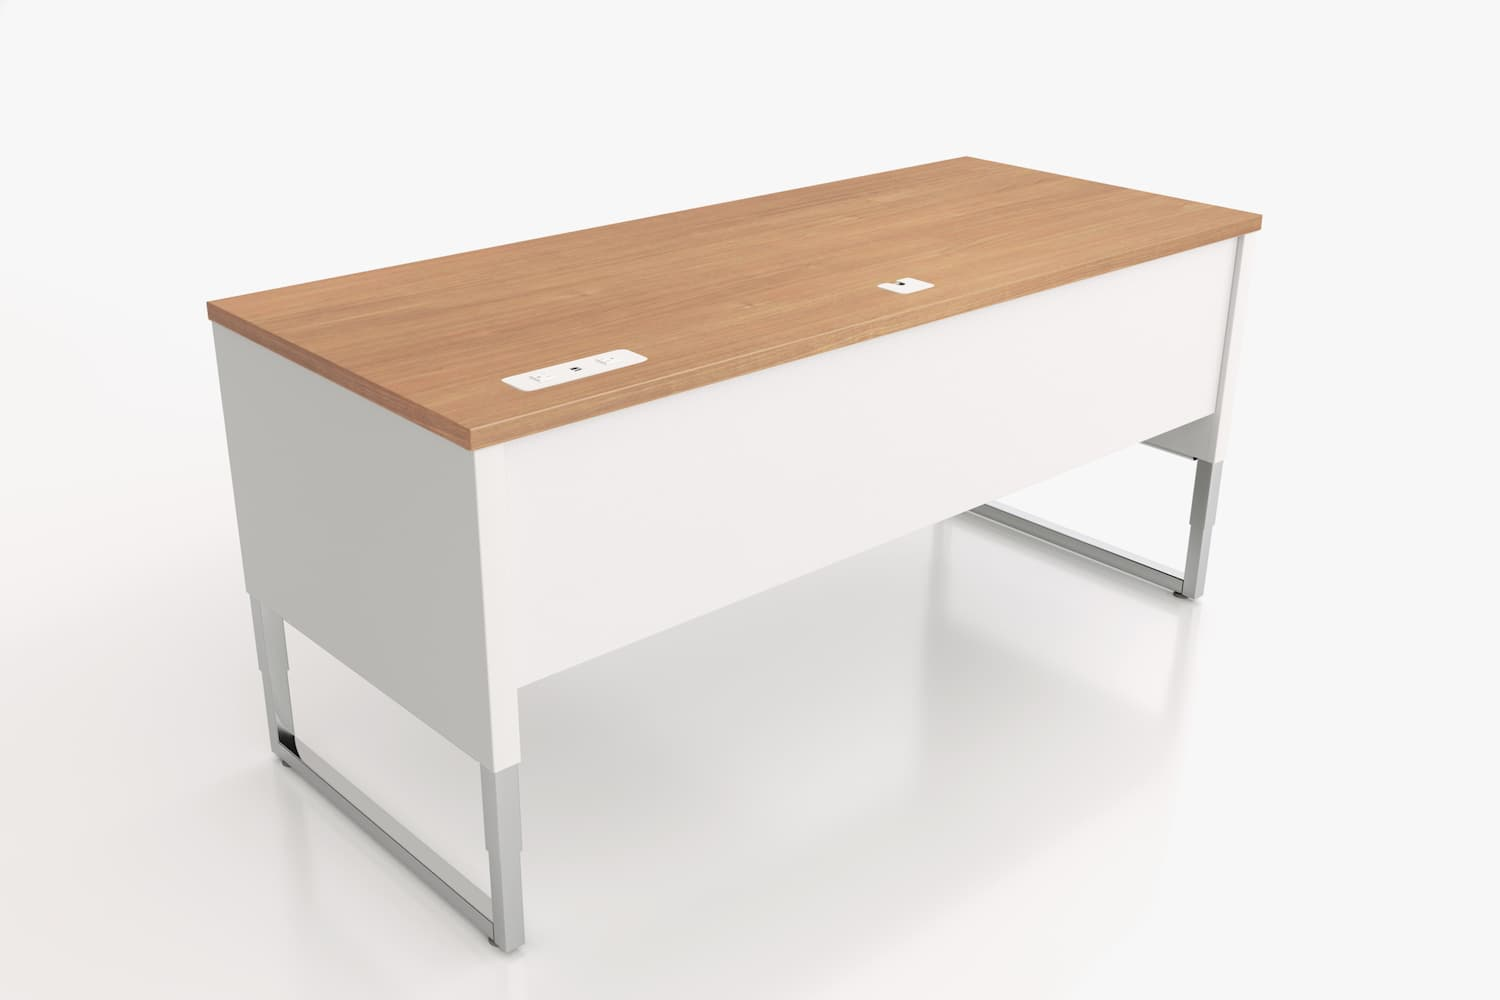 Advent-Desk-ADV-7230-WH-Custom-Top-9-Back